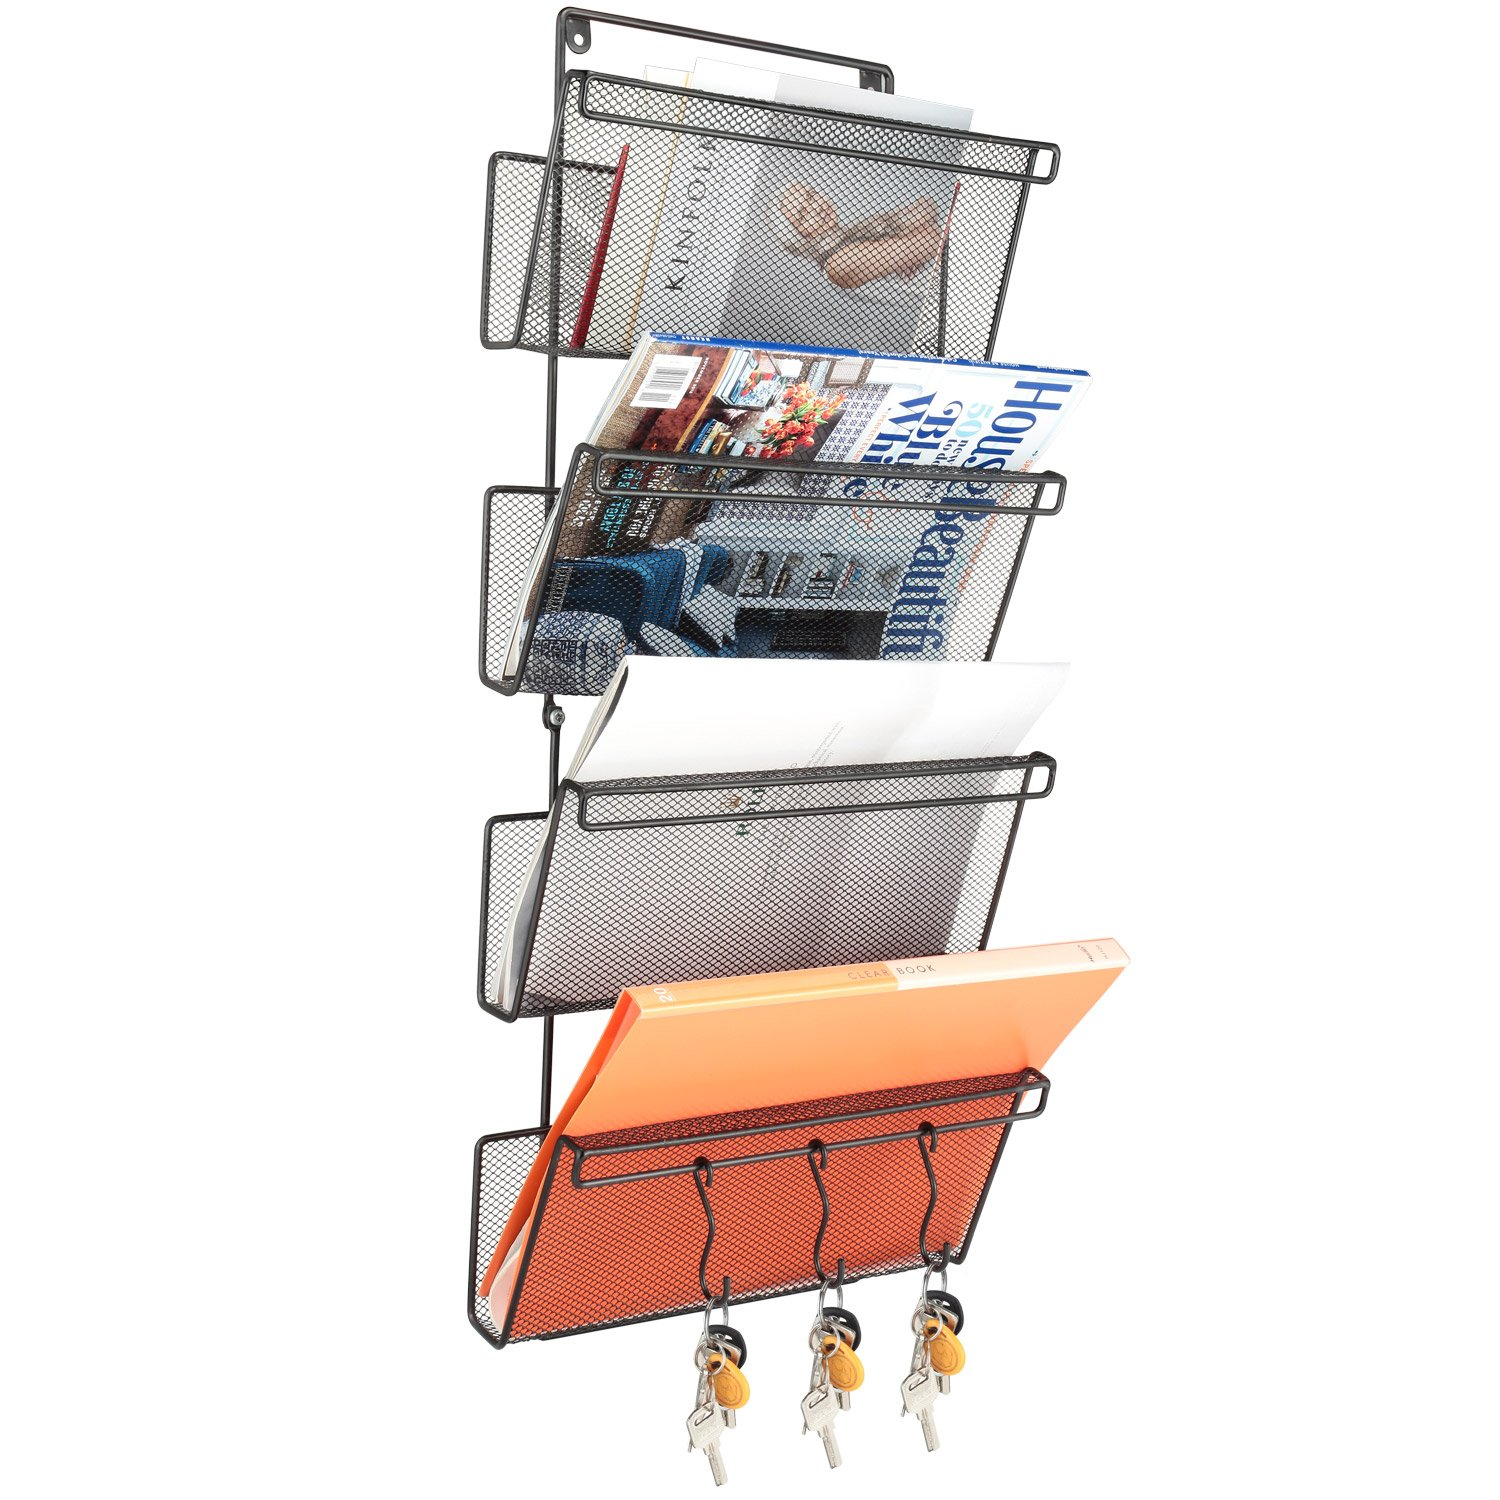 Samstar 4 Tier Hanging Wall File Organizer, Metal Mesh Wall Mounted File Holder with 3 Key Hooks for Office Home